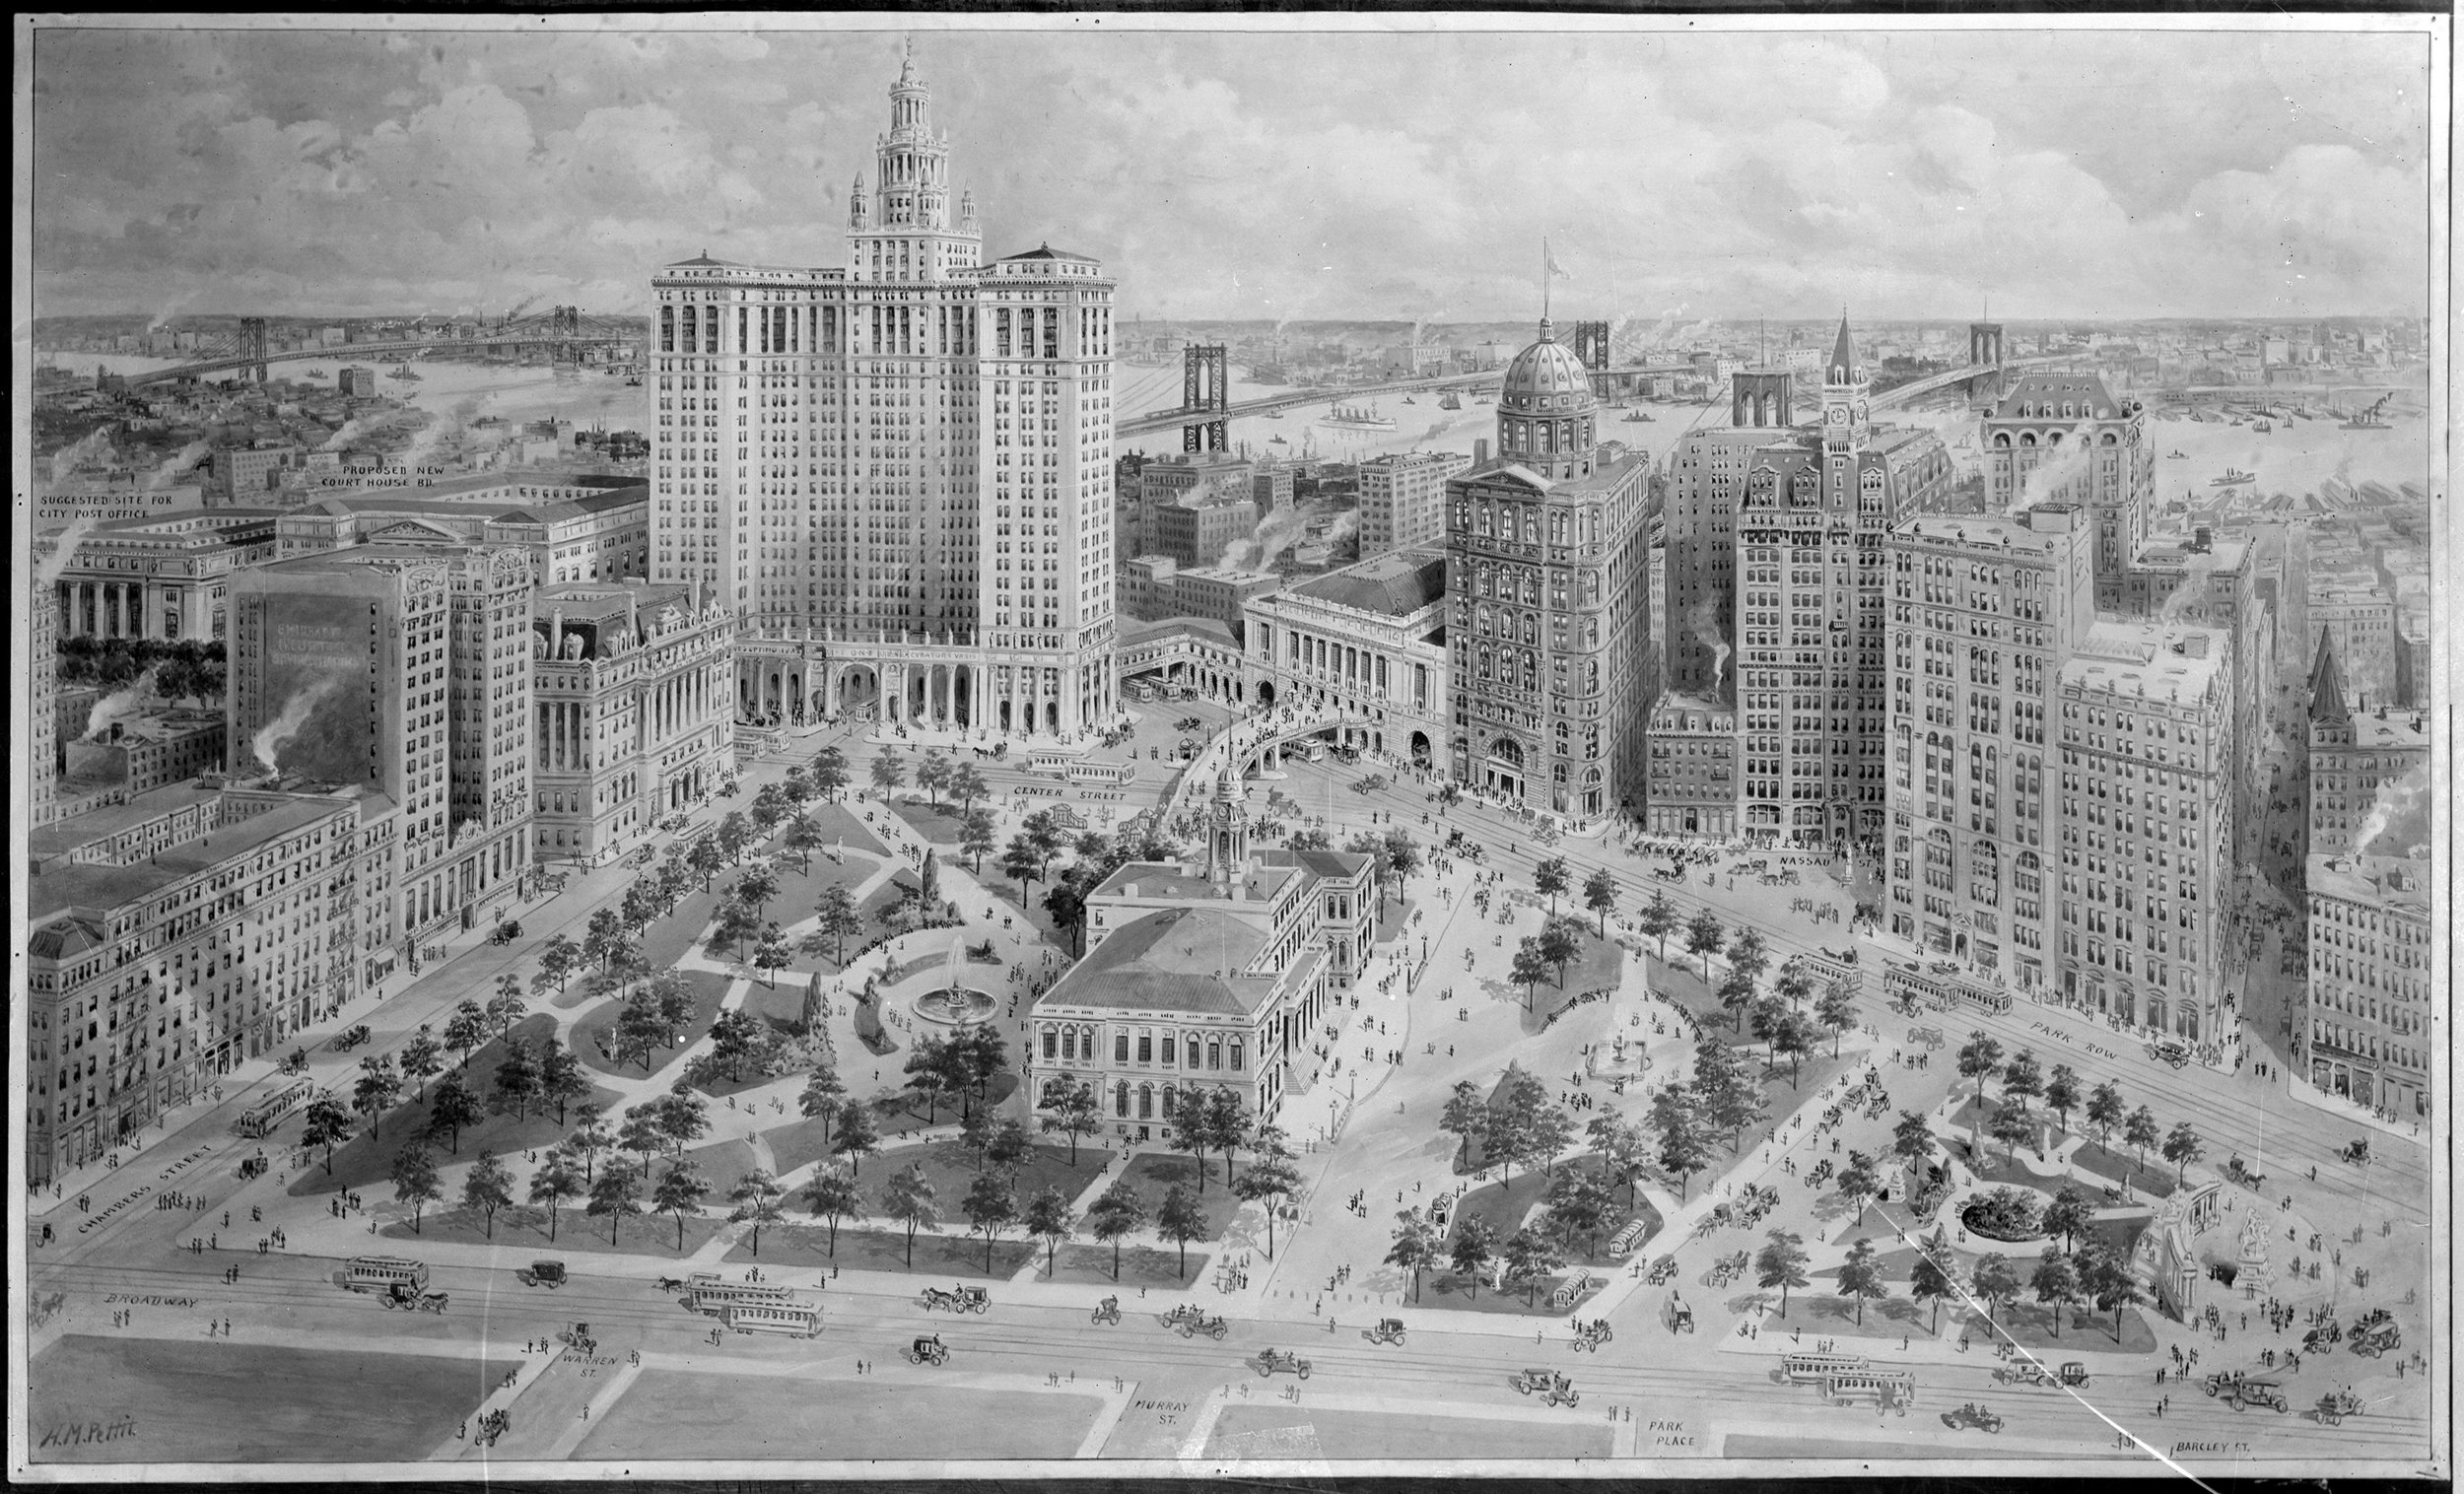 This rendering from 1915 showing new civic center improvements included the destruction of the Tweed Courthouse. The destruction of Tweed was a pet project of civic leaders for at least six decades. It is now a landmarked building. H.M. Pettit. Department of Bridges/Plant & Structures collection, NYC Municipal Archives.